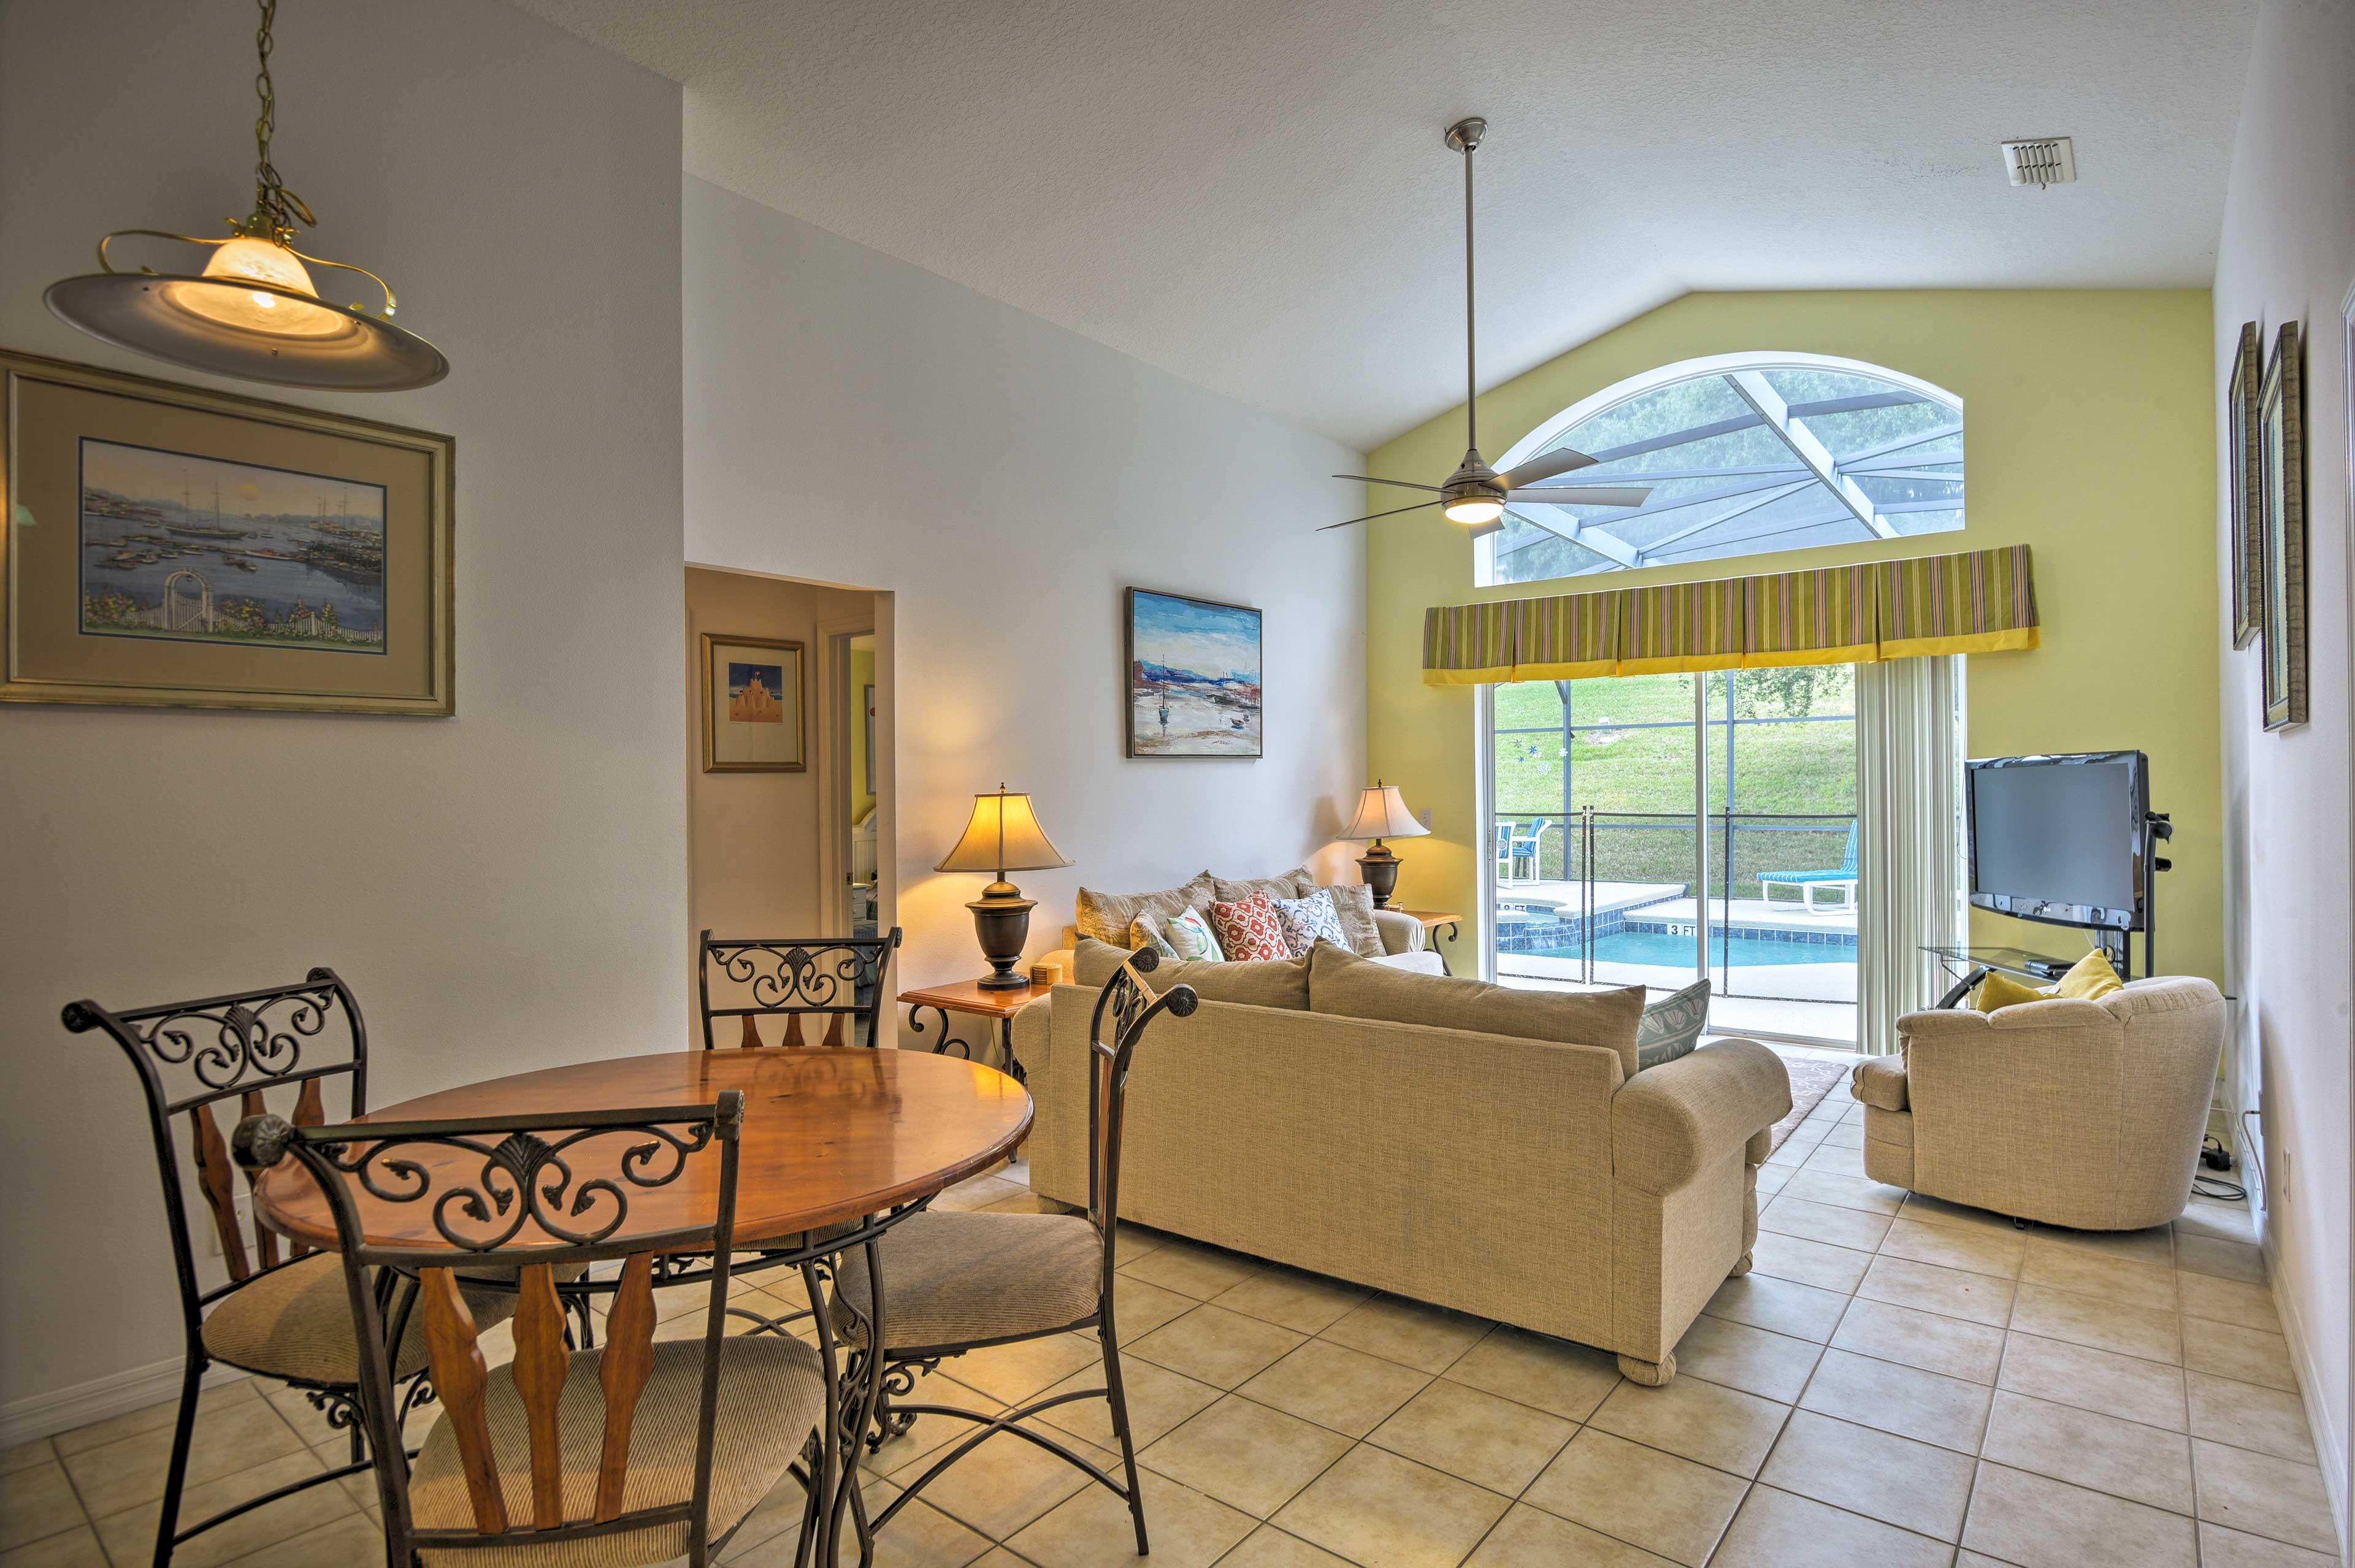 The interior of this 5-bed, 3-bath home is light and airy!